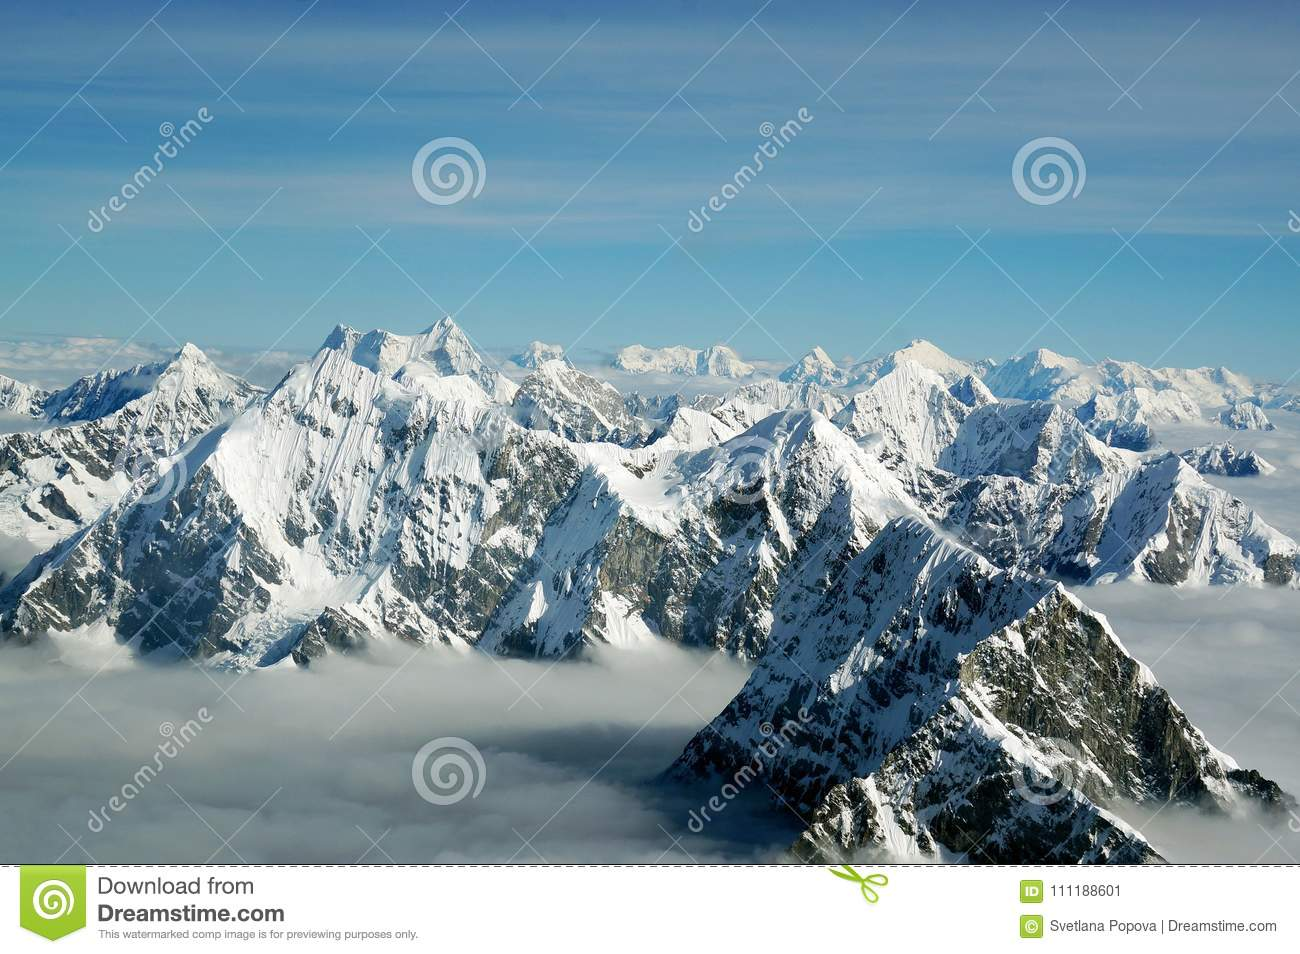 The Tops The Himalayan Mountains The Clouds View From The